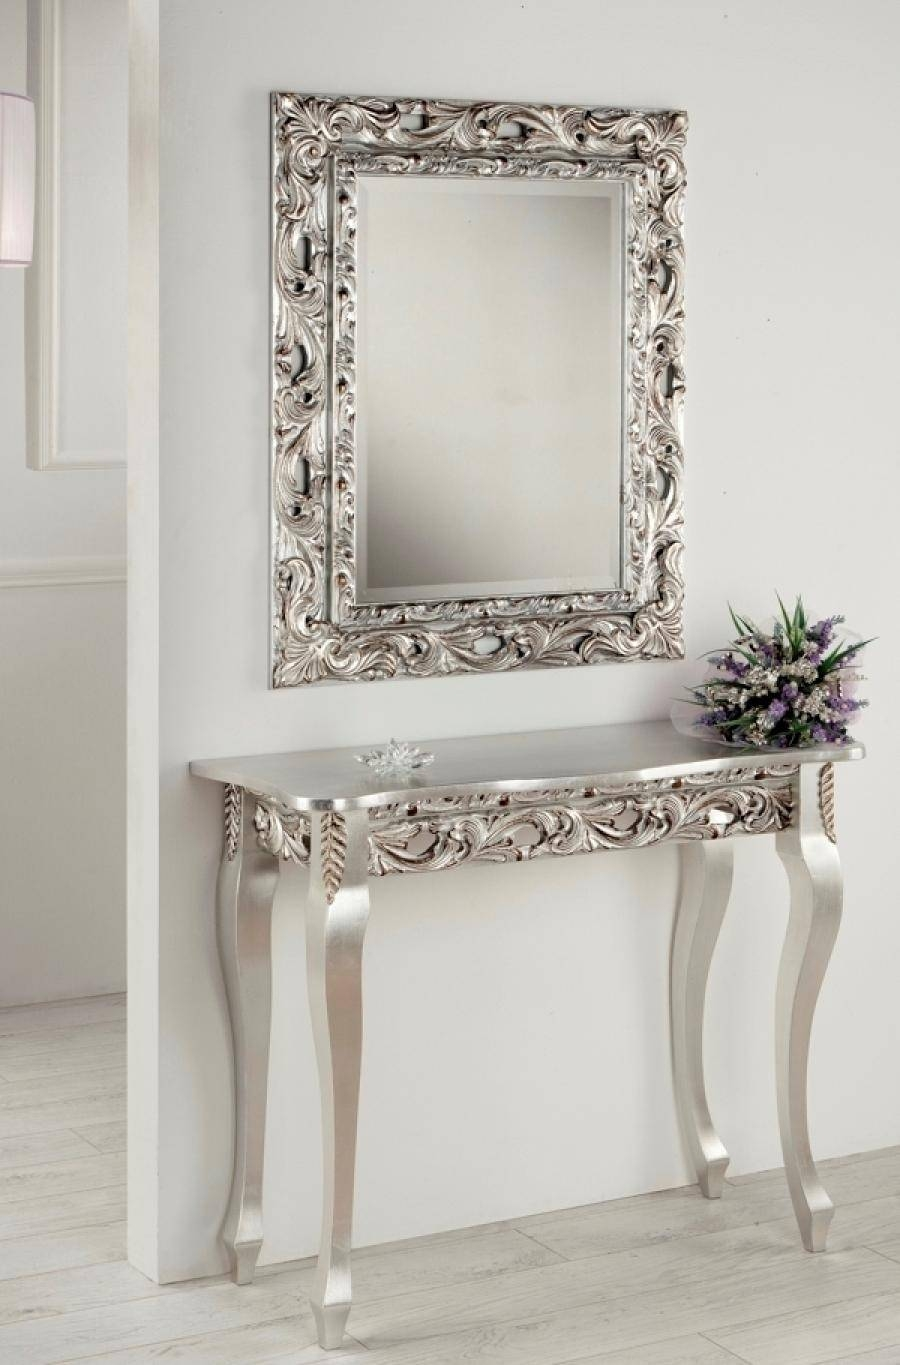 Console Table With Mirror – Harpsounds.co inside Mirrors Console Table (Image 4 of 15)